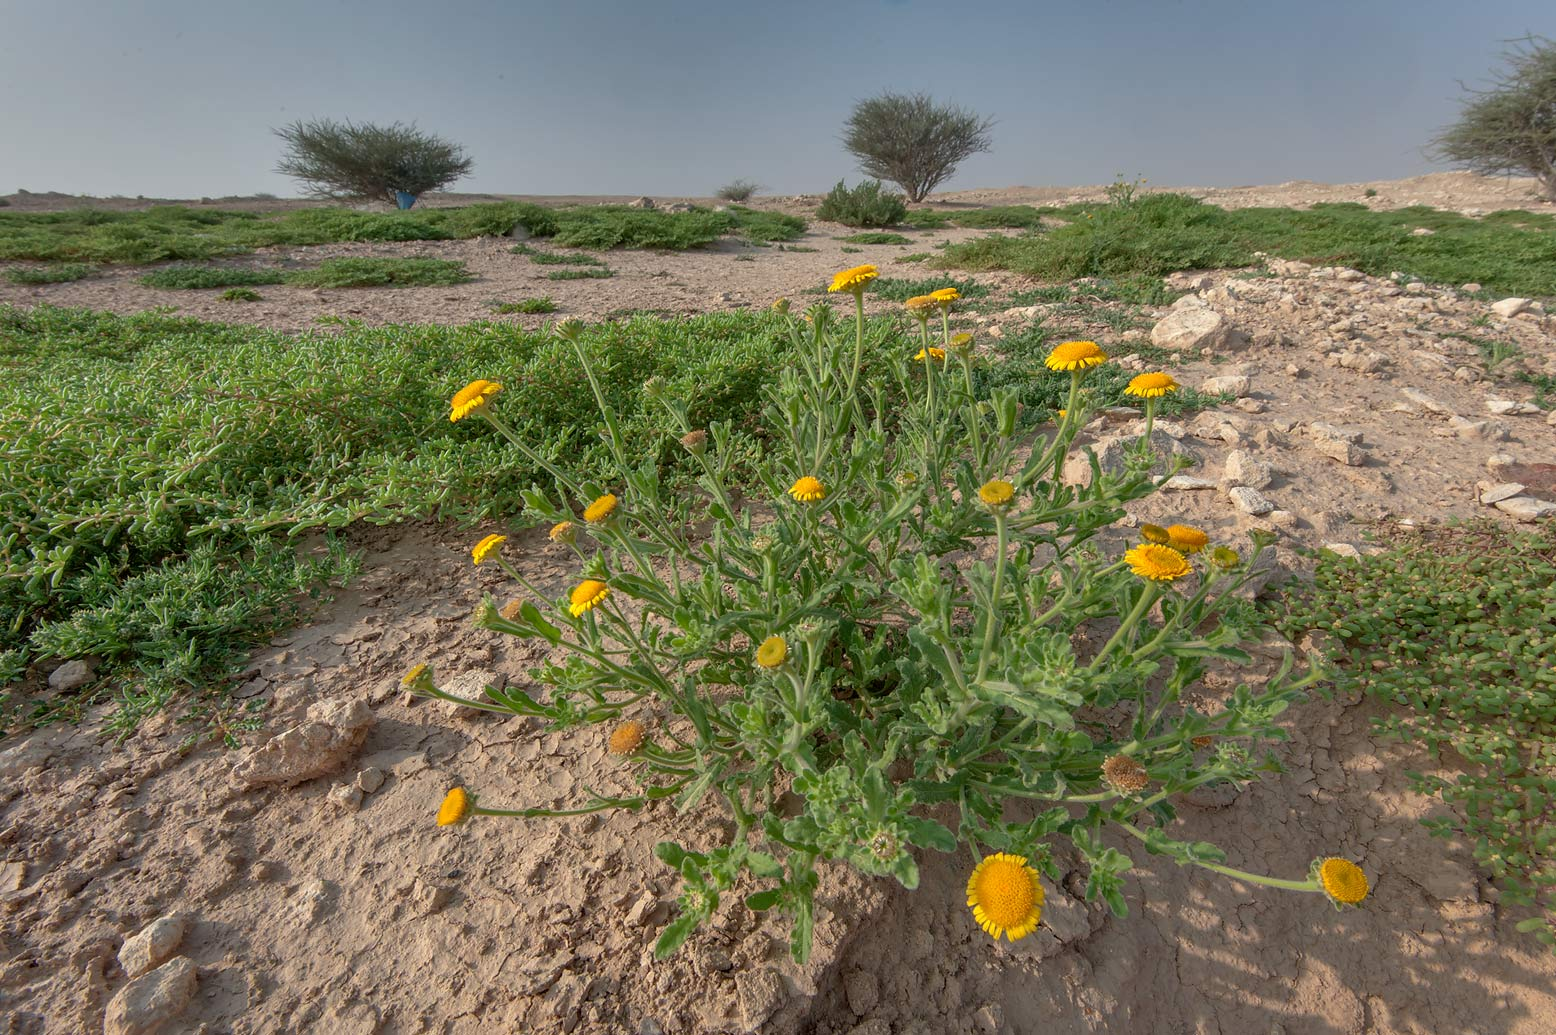 Plant of Pulicaria guestii with yellow flowers in...from camel race track. Lekhraib, Qatar